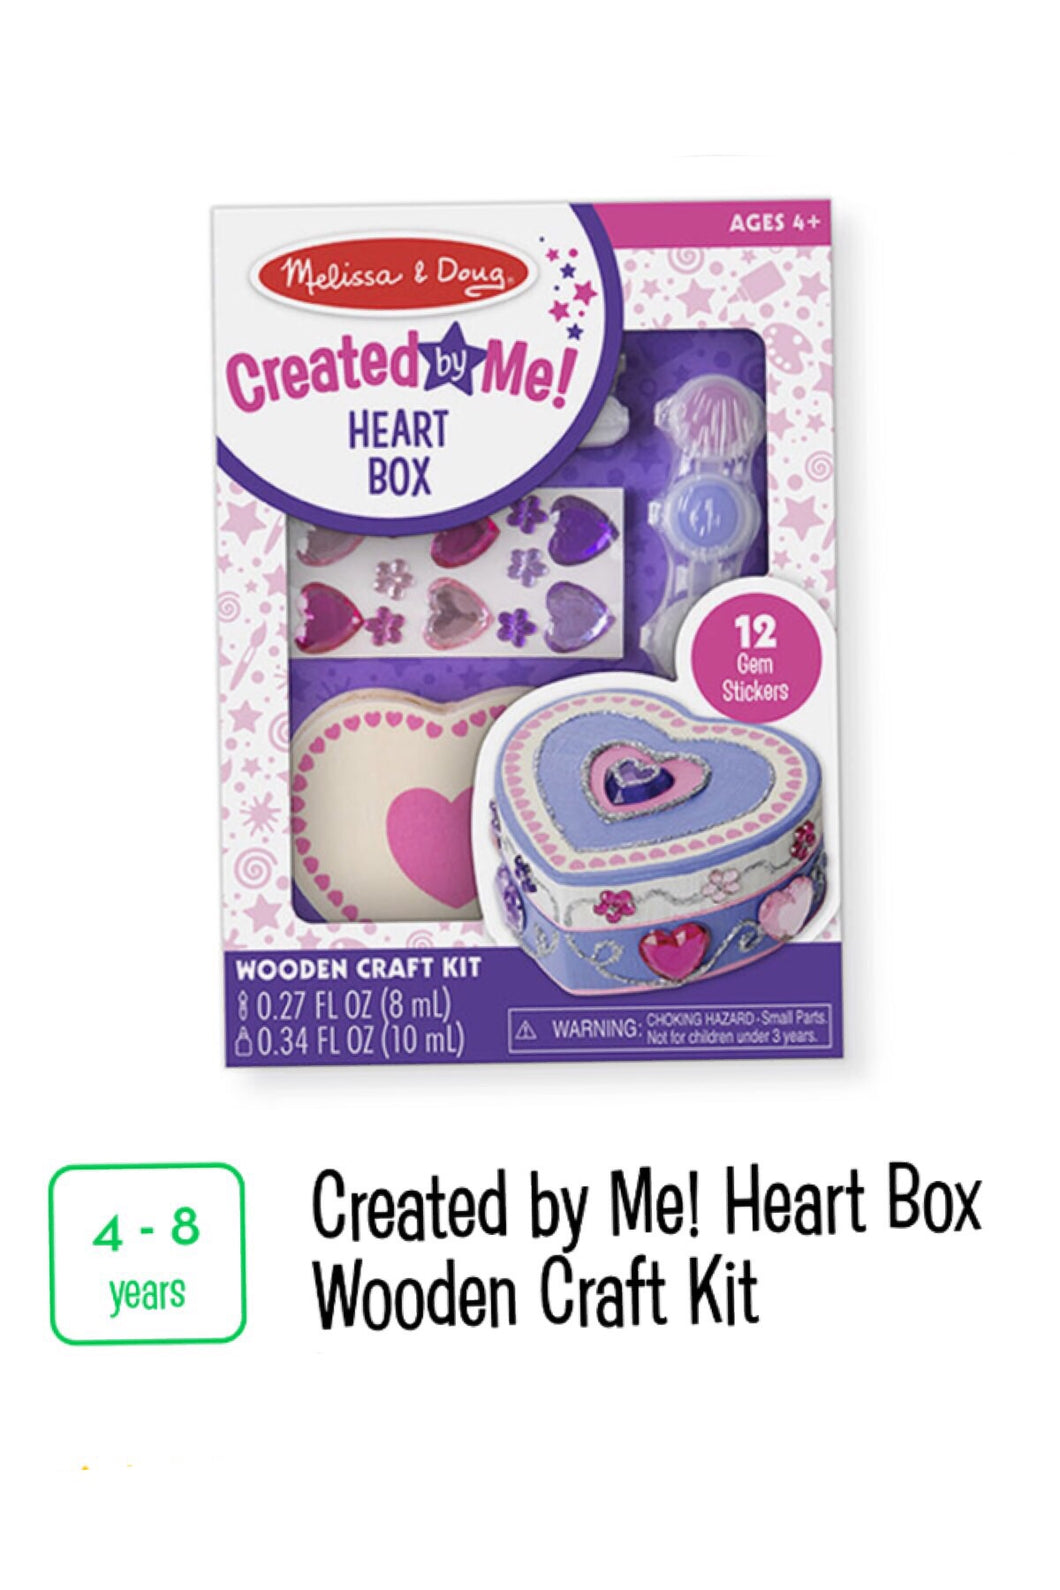 Heart Box Wooden Craft Kit